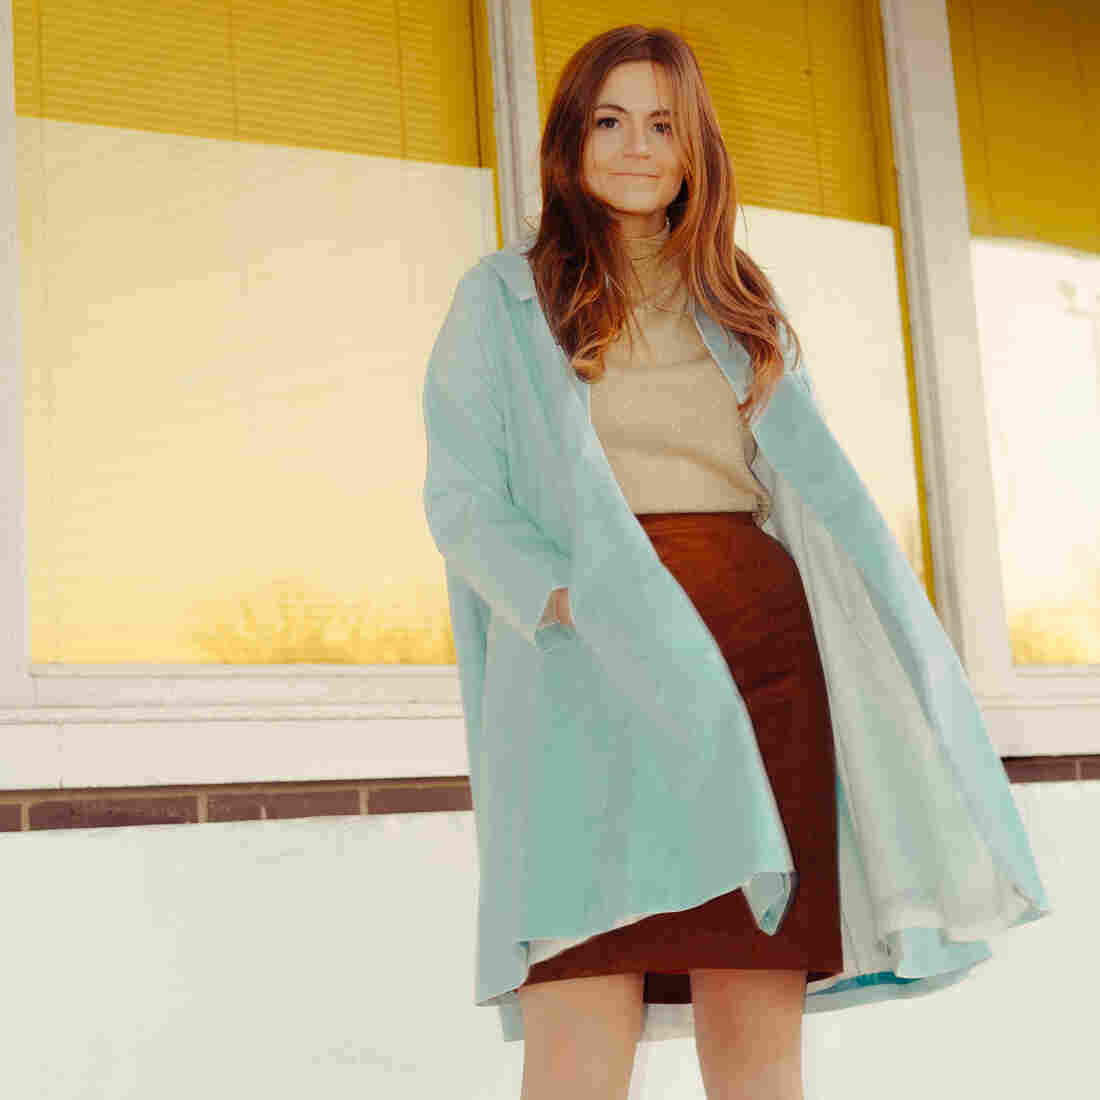 Erin Rae will perform at SXSW 2019.